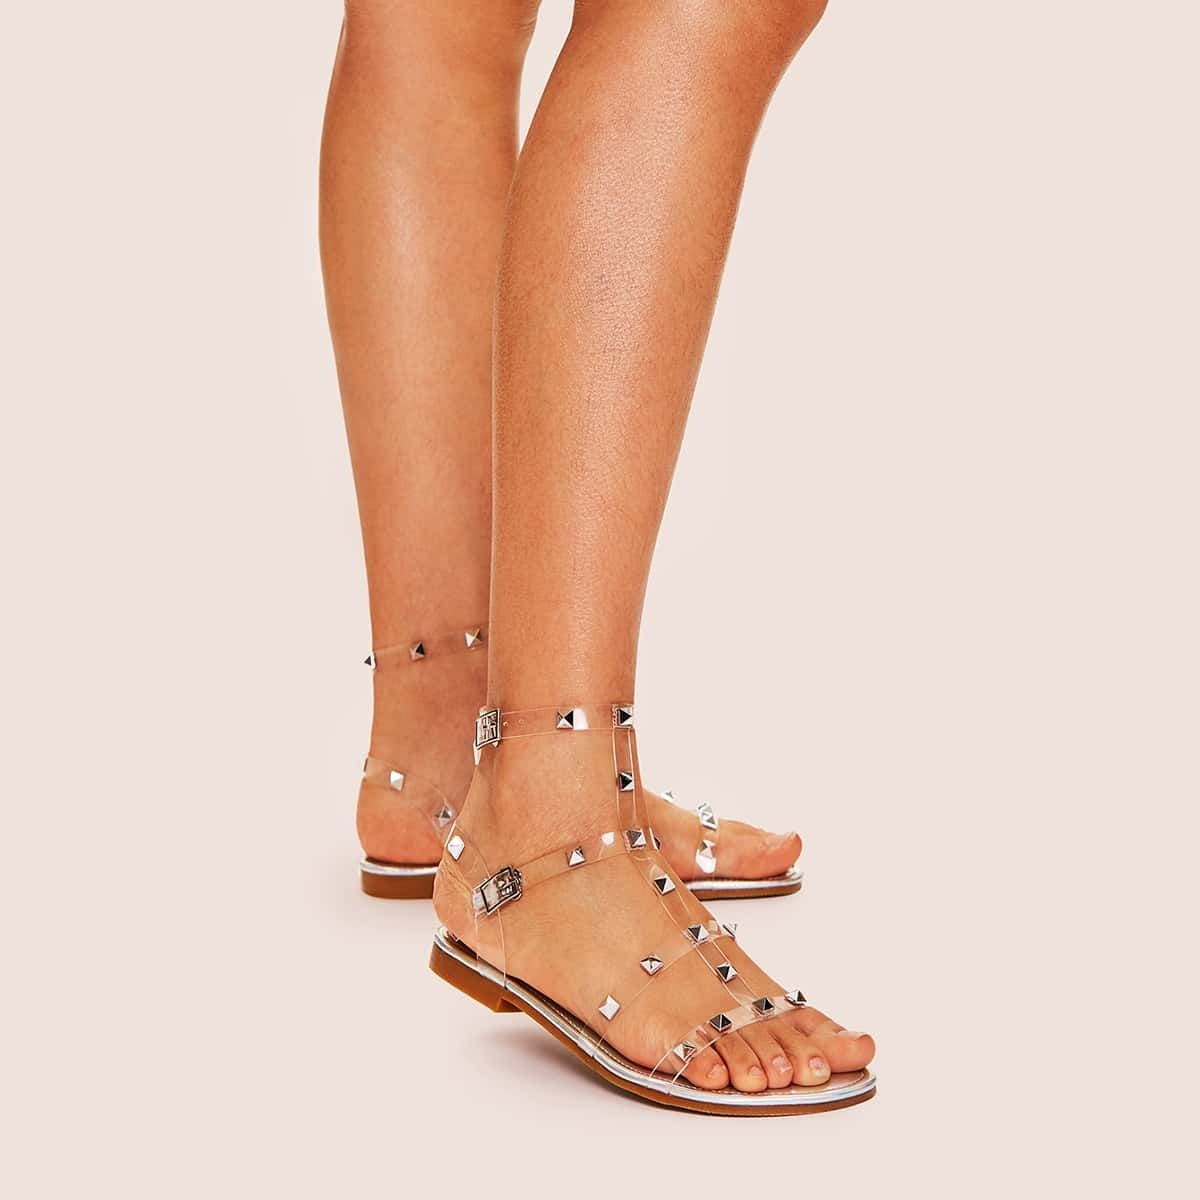 Studded Decor Strappy Sandals